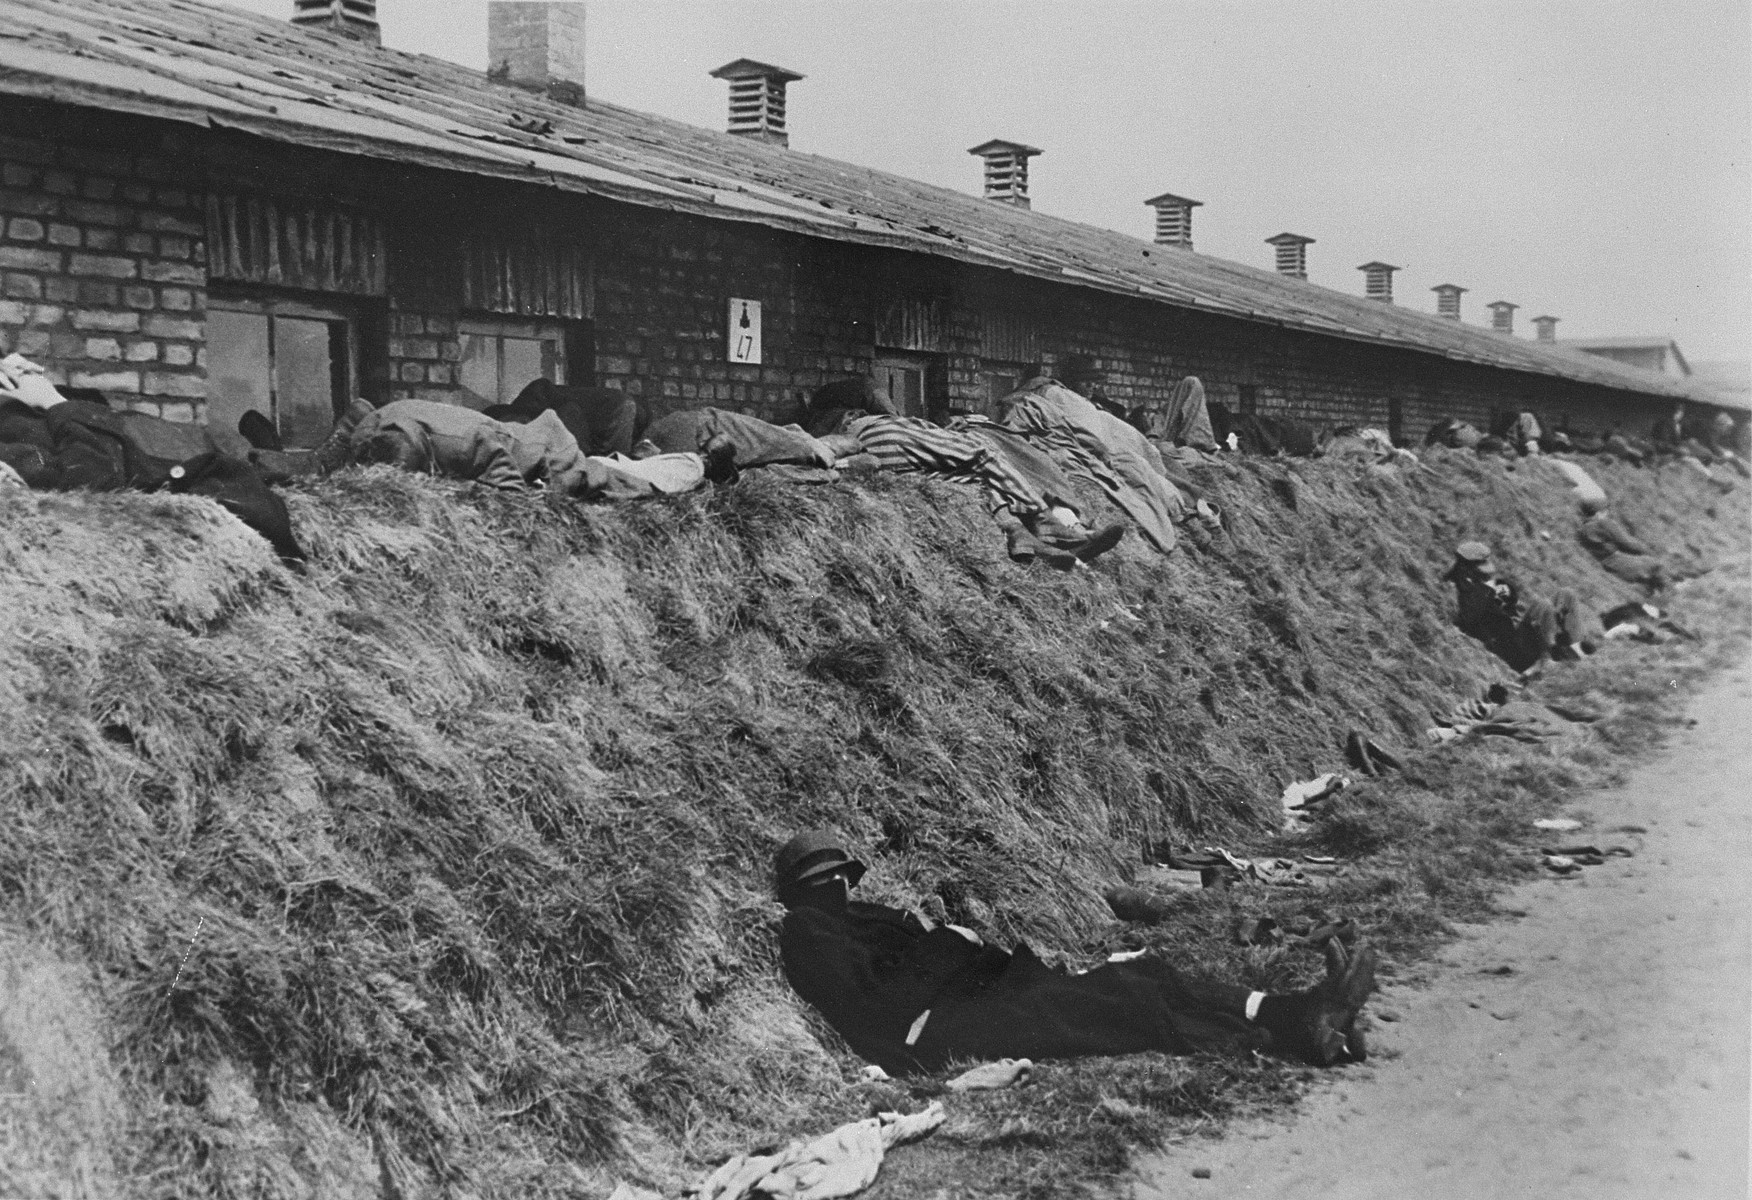 The living sleep among the dead outside of a barrack in Bergen-Belsen.